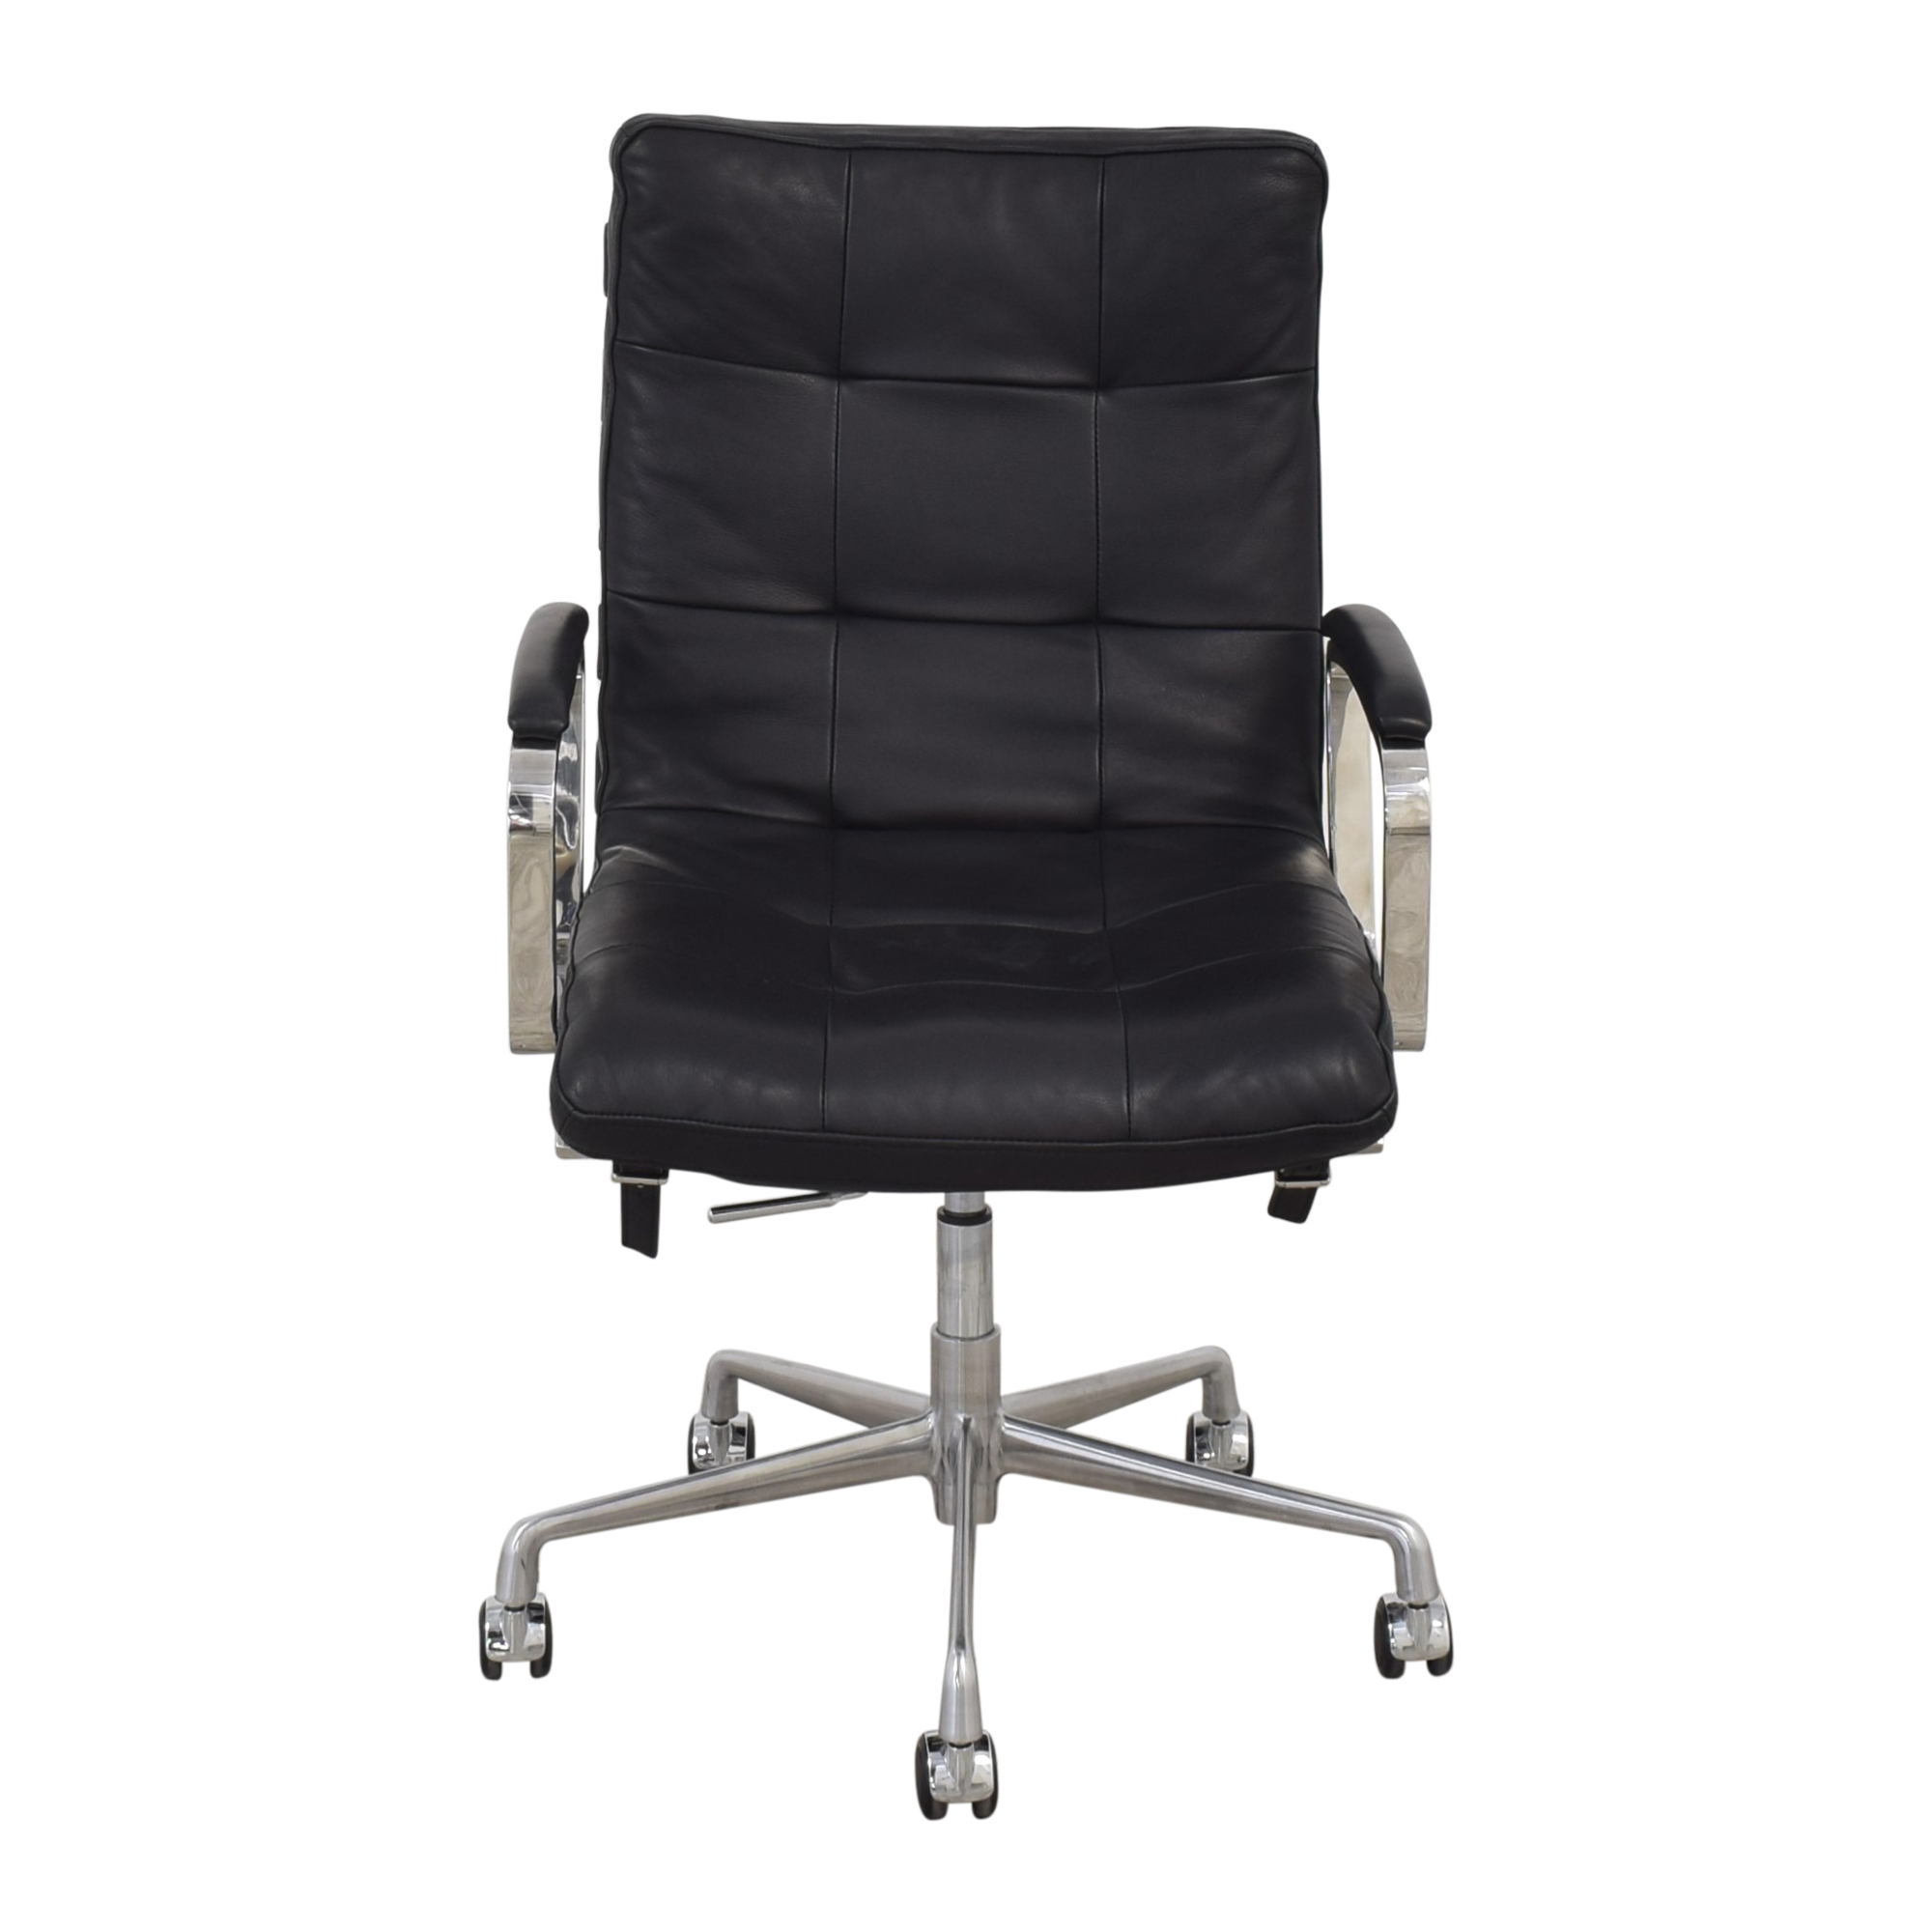 shop Restoration Hardware Restoration Hardware Rossi Desk Chair online